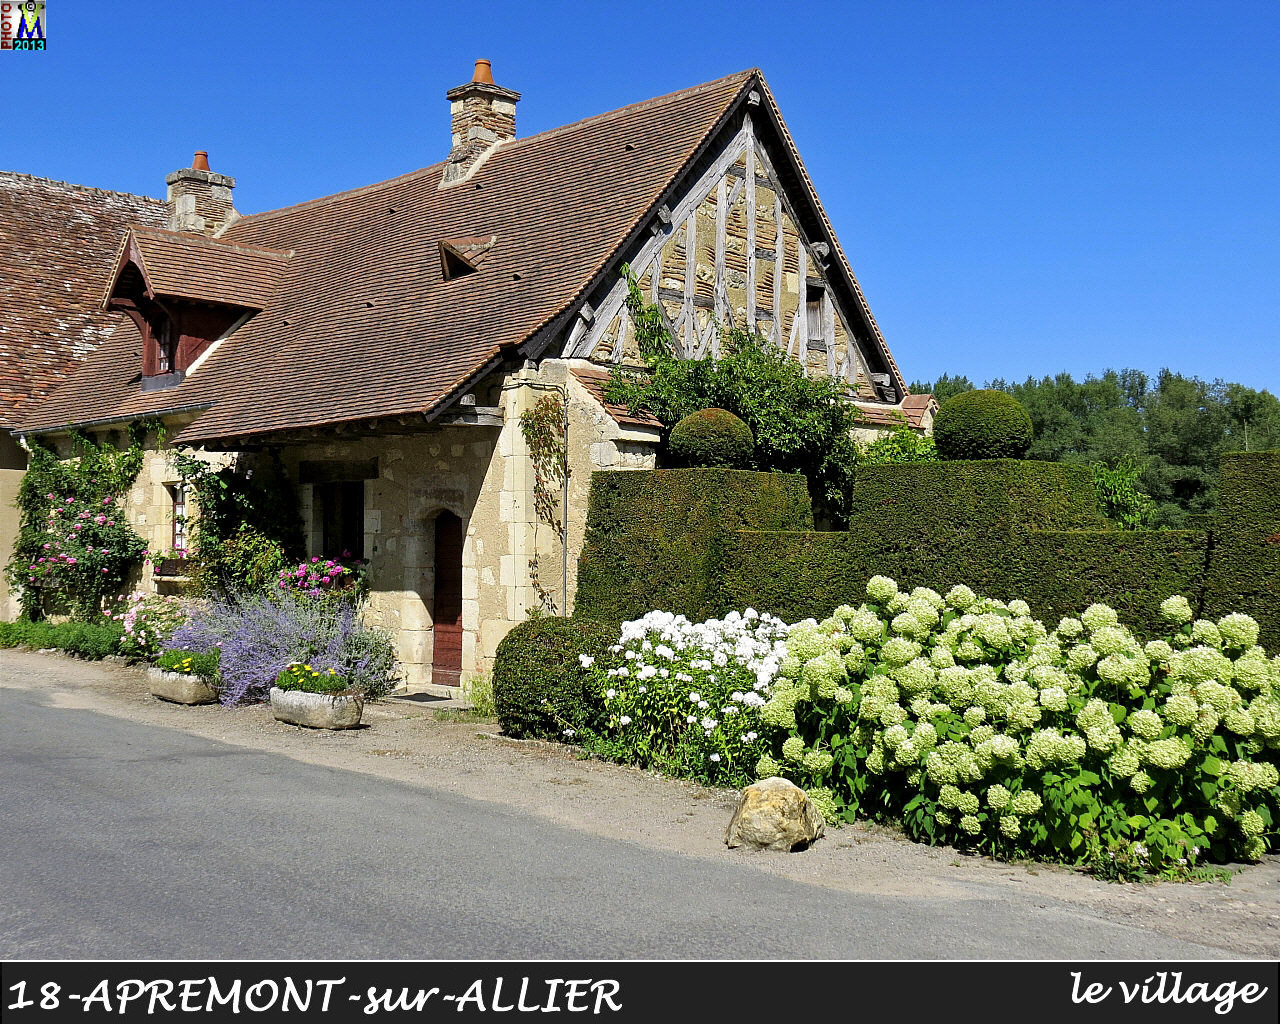 18APREMONT-ALLIER_village_124.jpg